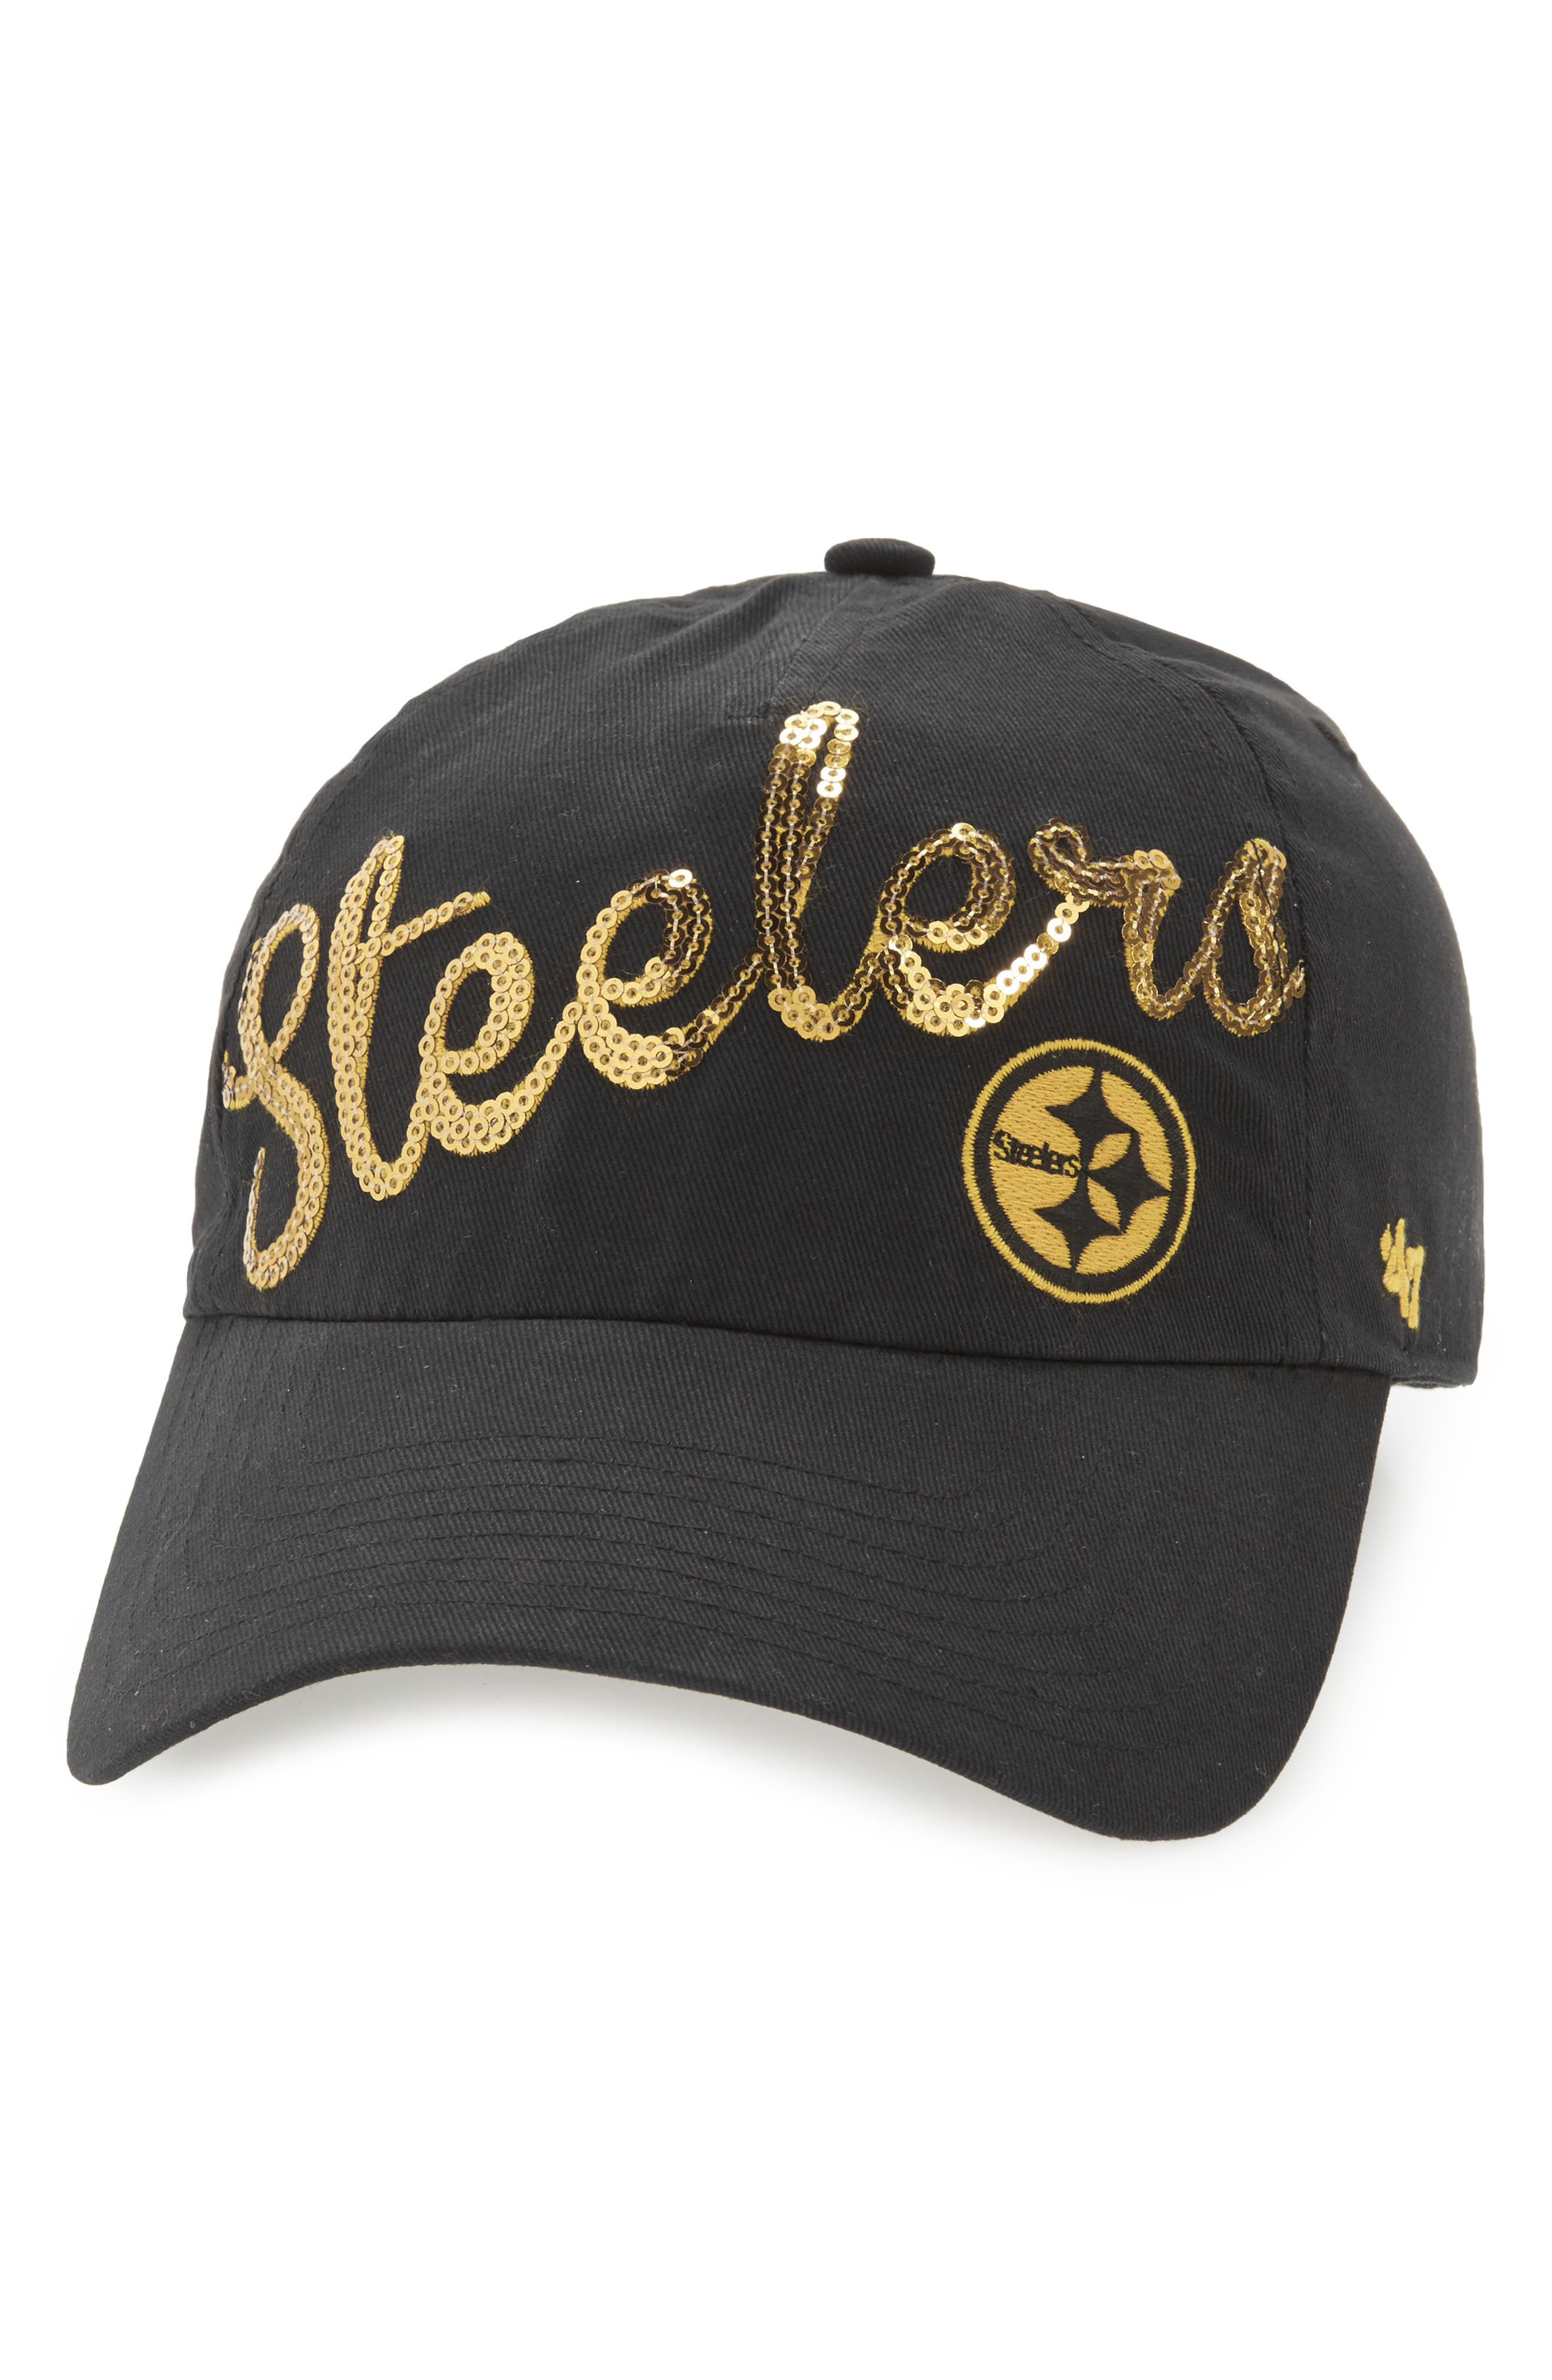 Alternate Image 1 Selected - '47 Pittsburgh Steelers Sparkle Cap